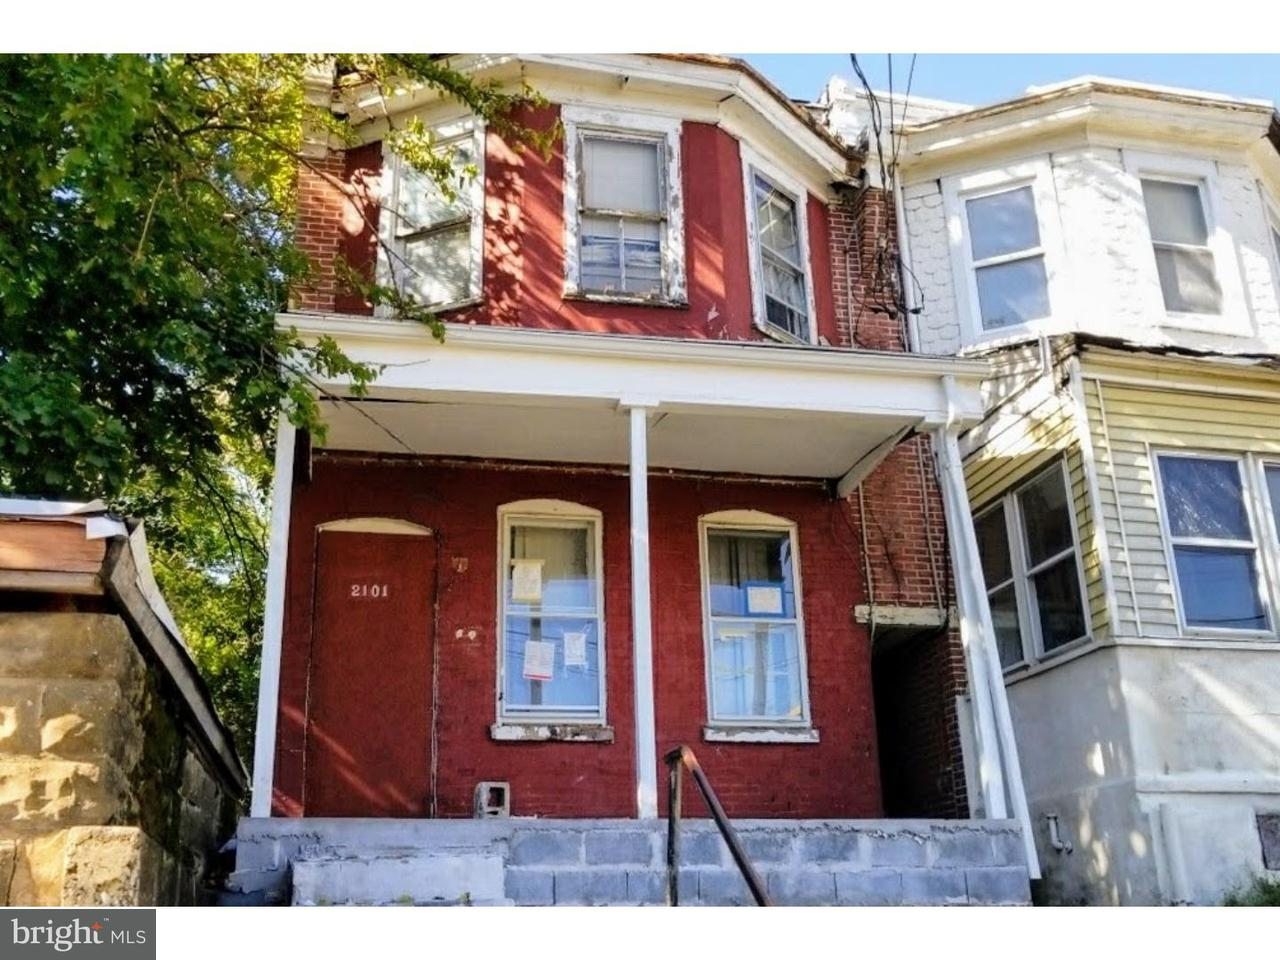 Townhouse for Rent at 2101 N LOCUST Street Wilmington, Delaware 19802 United States